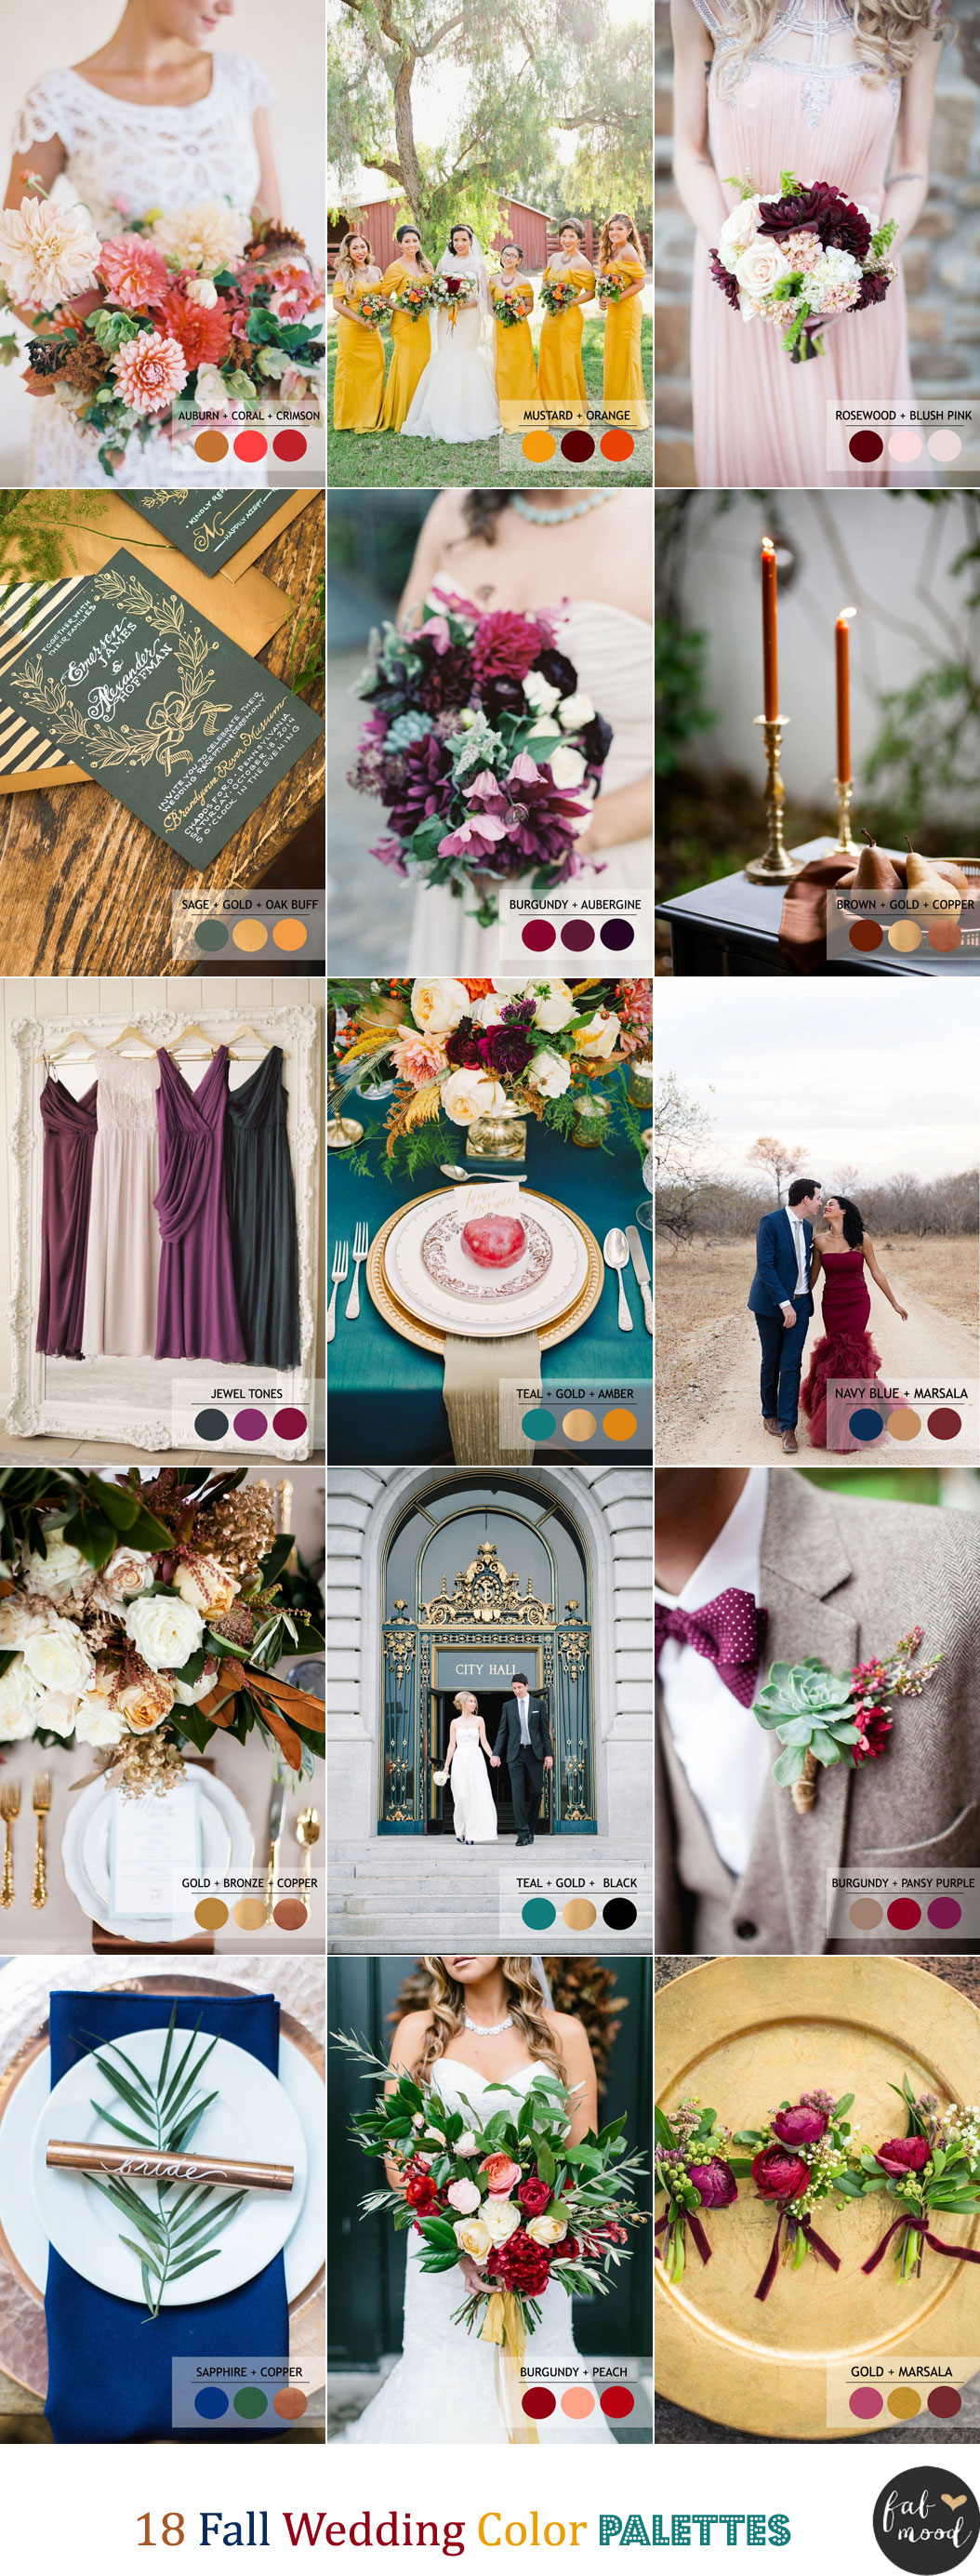 18 Fall Wedding Color Palettes | Autumn wedding colour combinations | fabmood.com